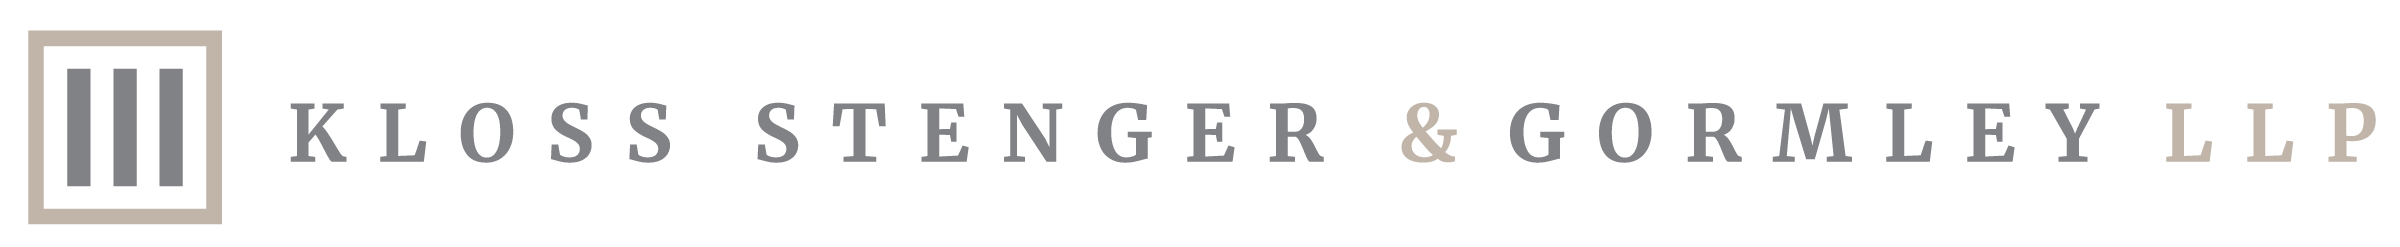 Kloss Stenger & Gormley LLP